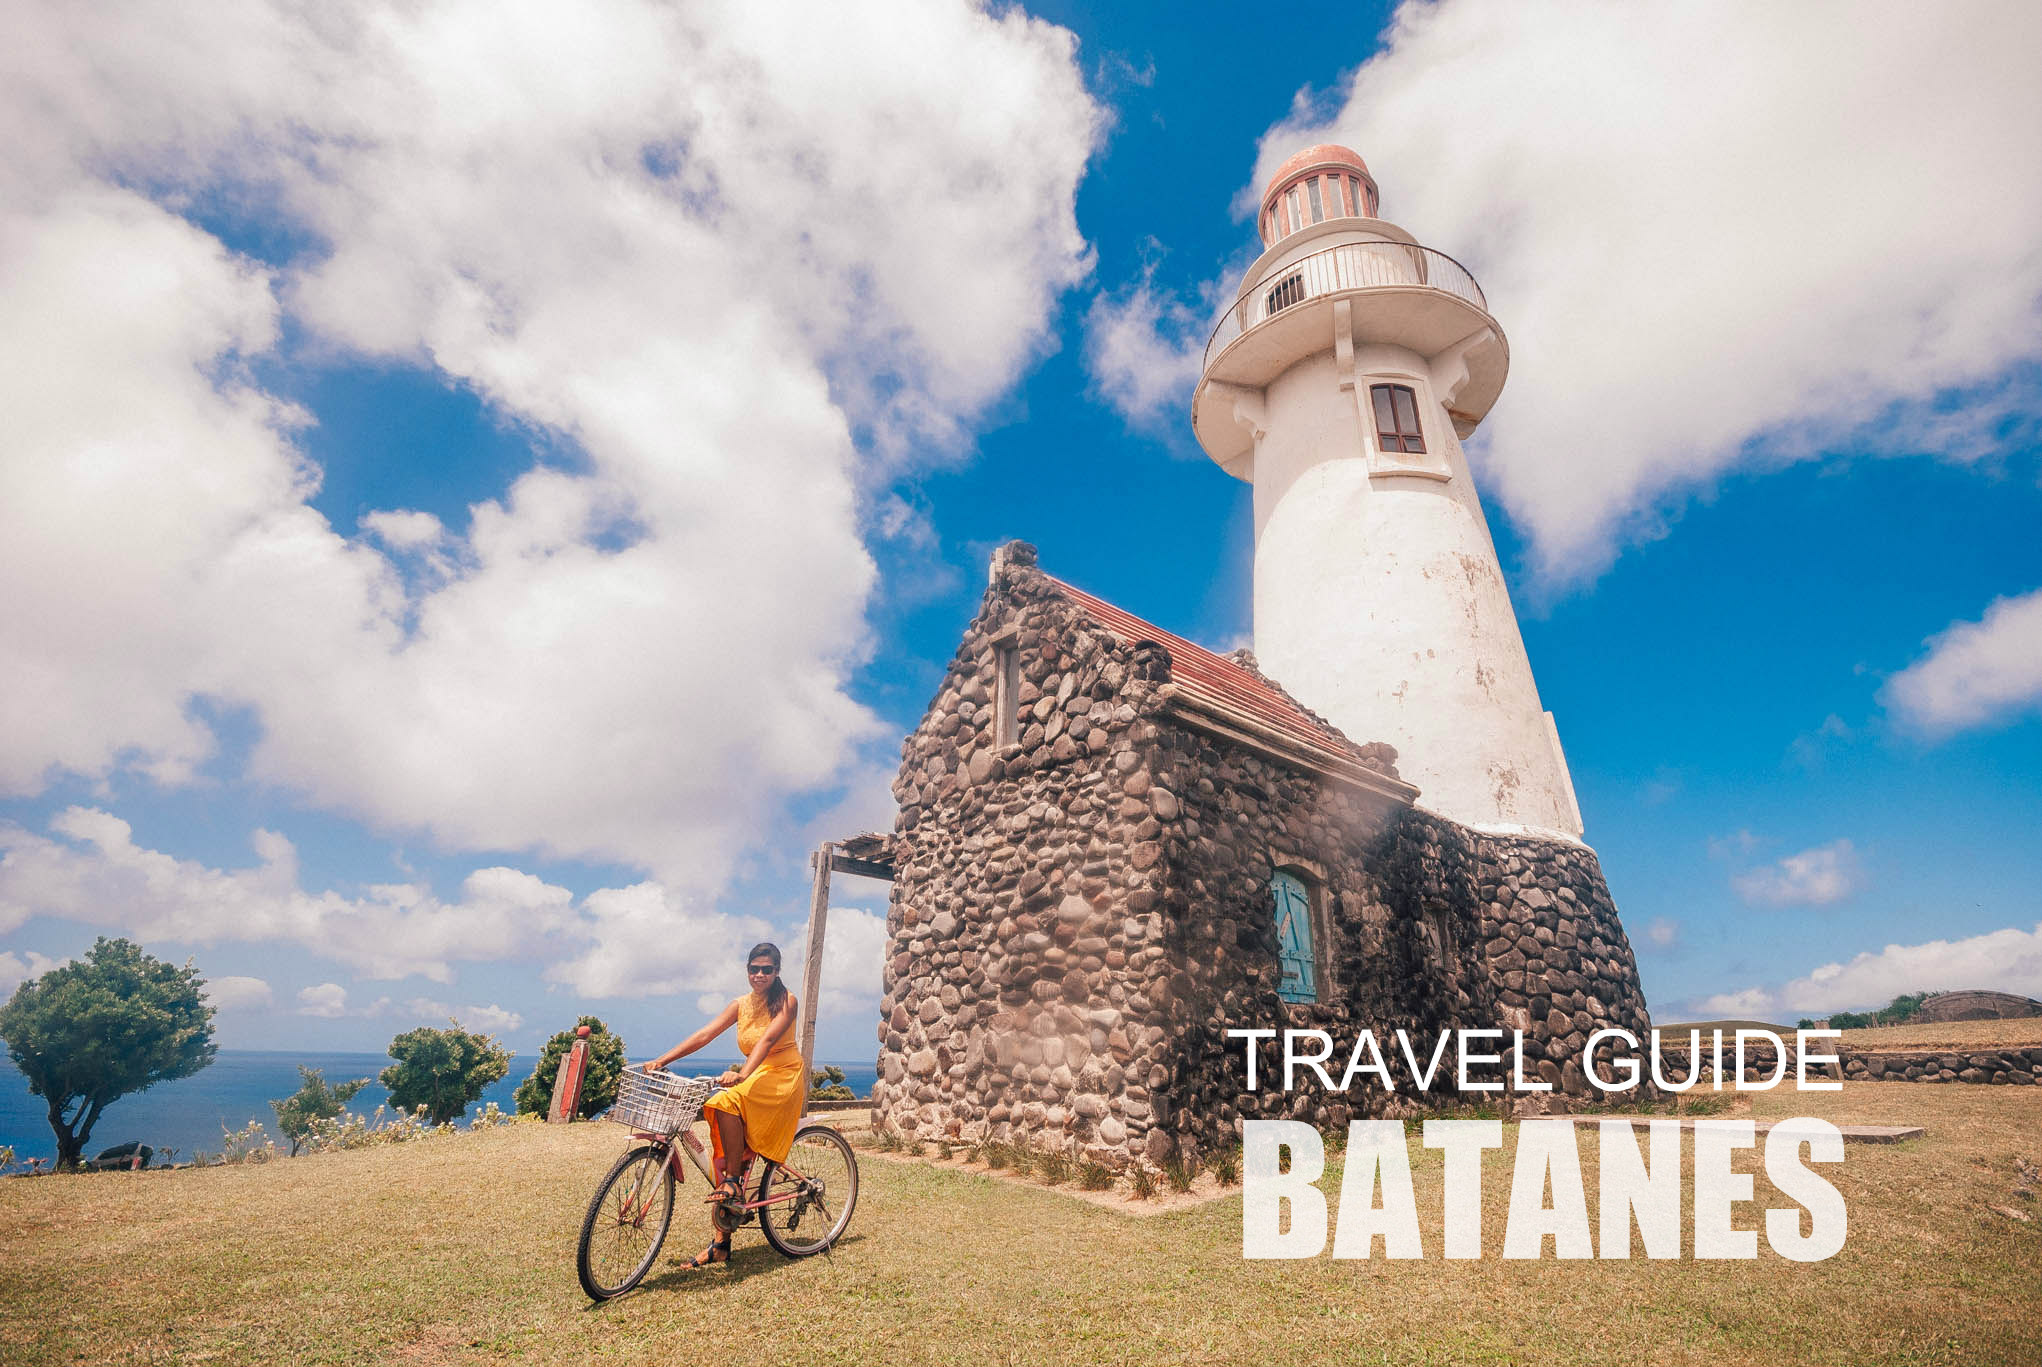 BATANES: Budget Travel Guide (Budget + Itinerary) 2018